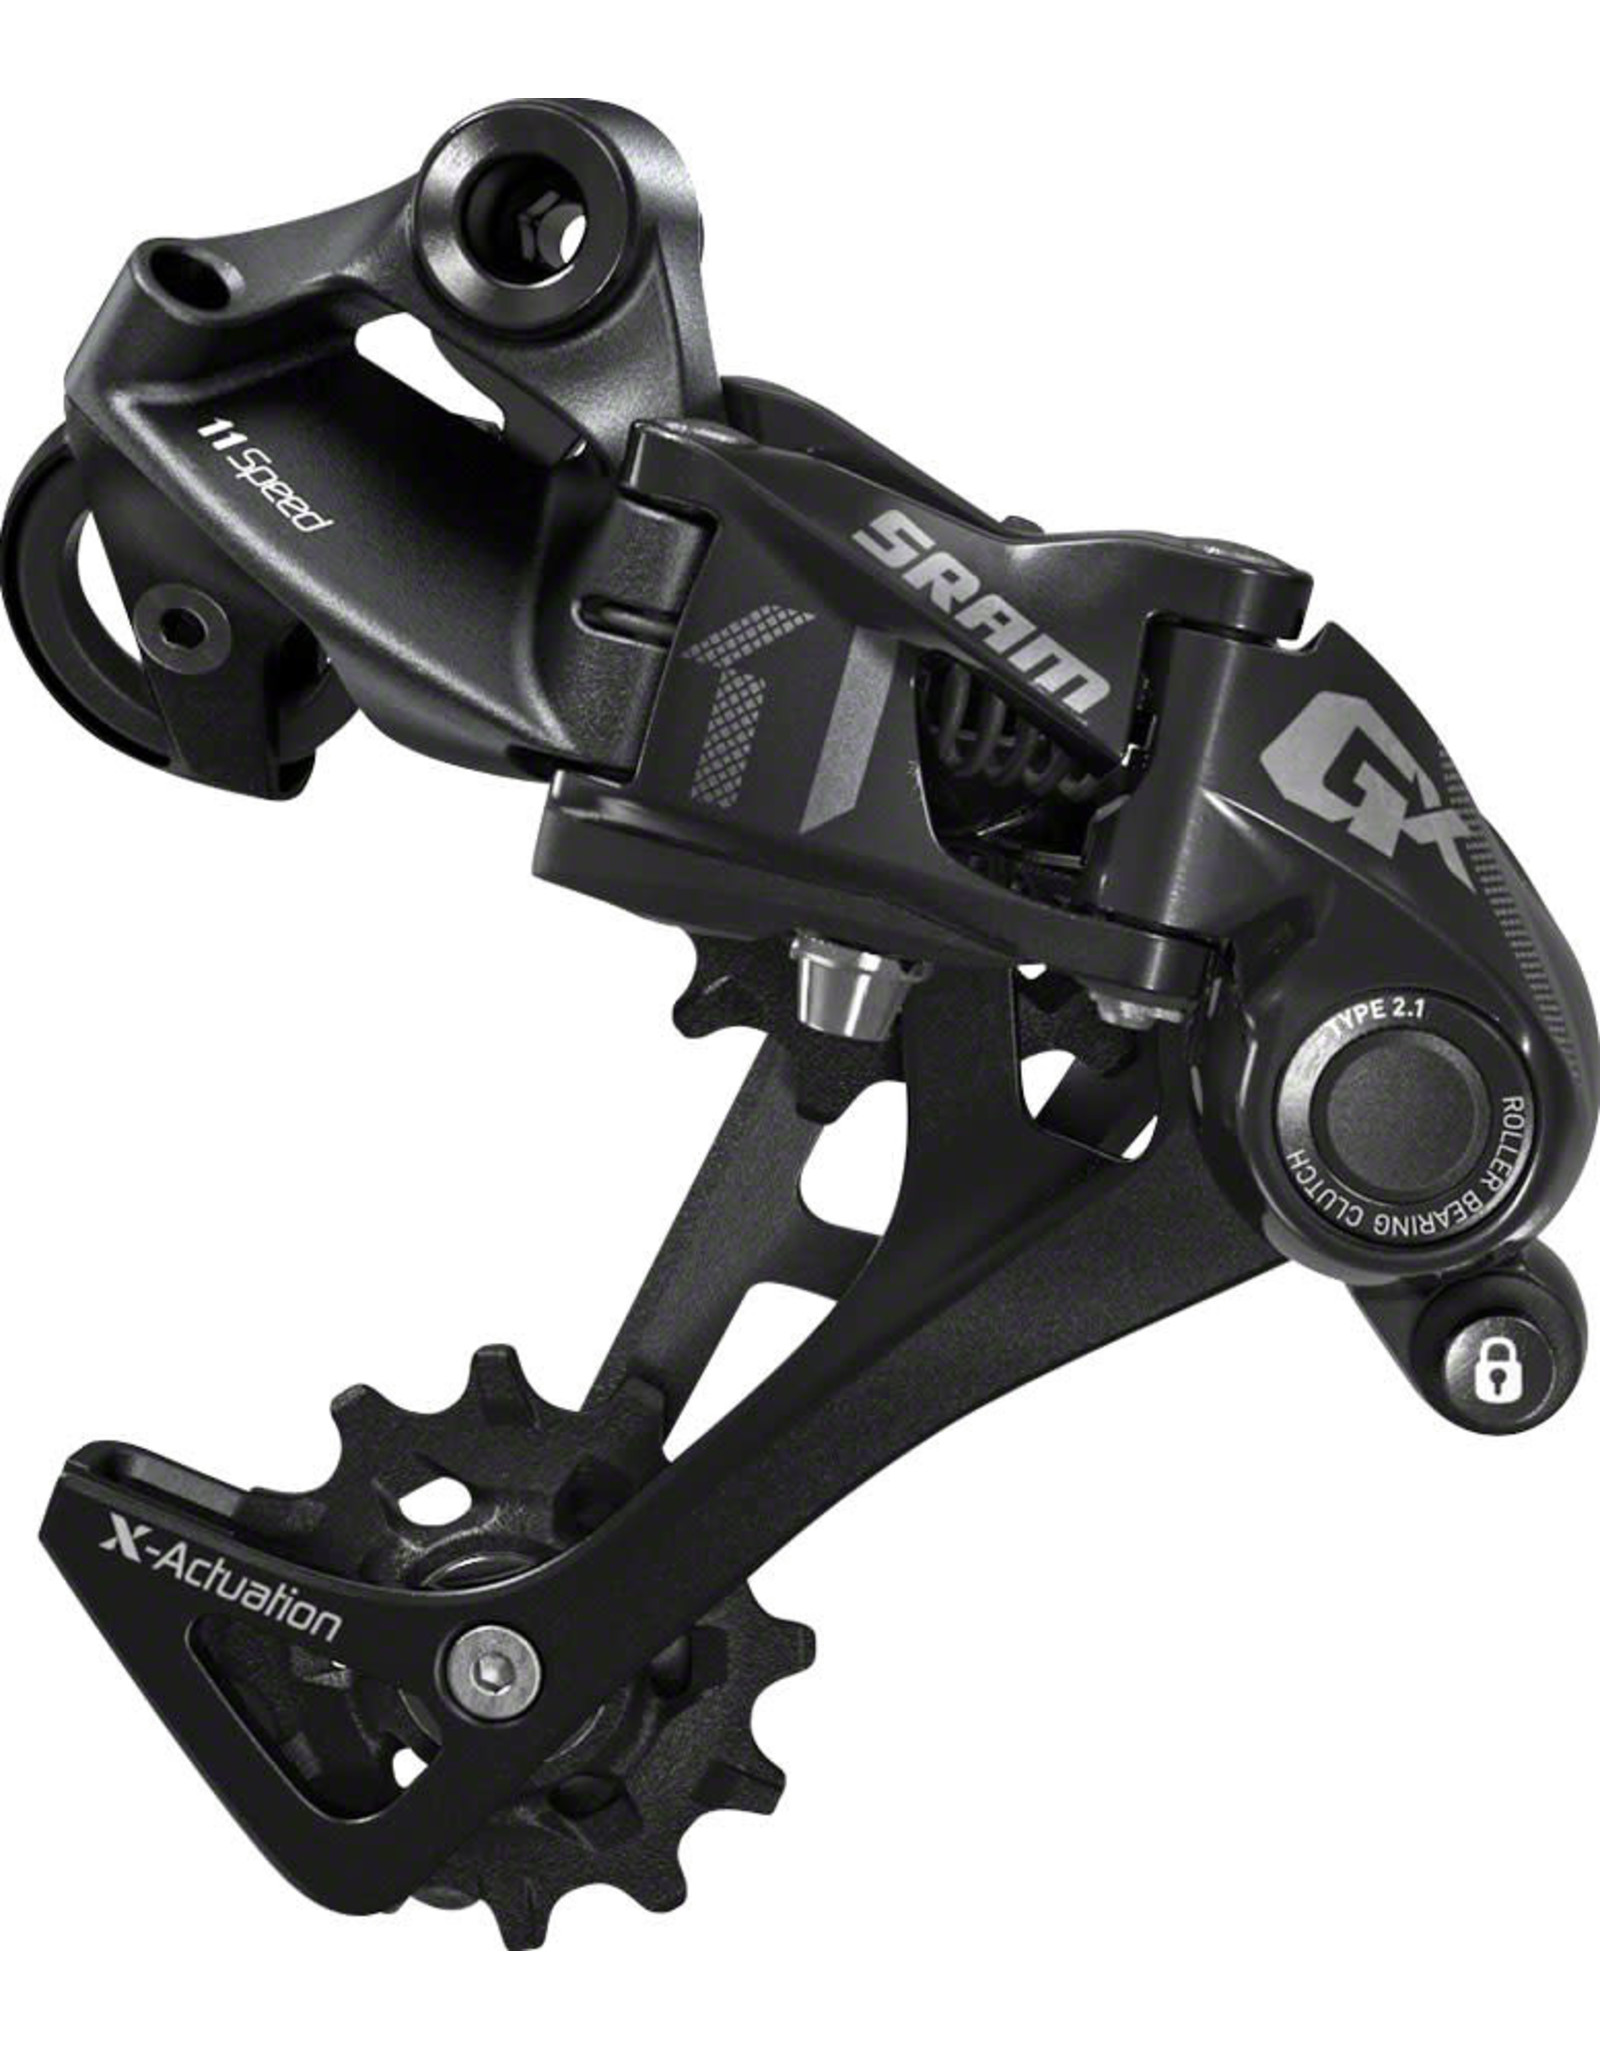 SRAM SRAM GX Rear Derailleur - 11 Speed, Long Cage, Black, 1x, With Clutch